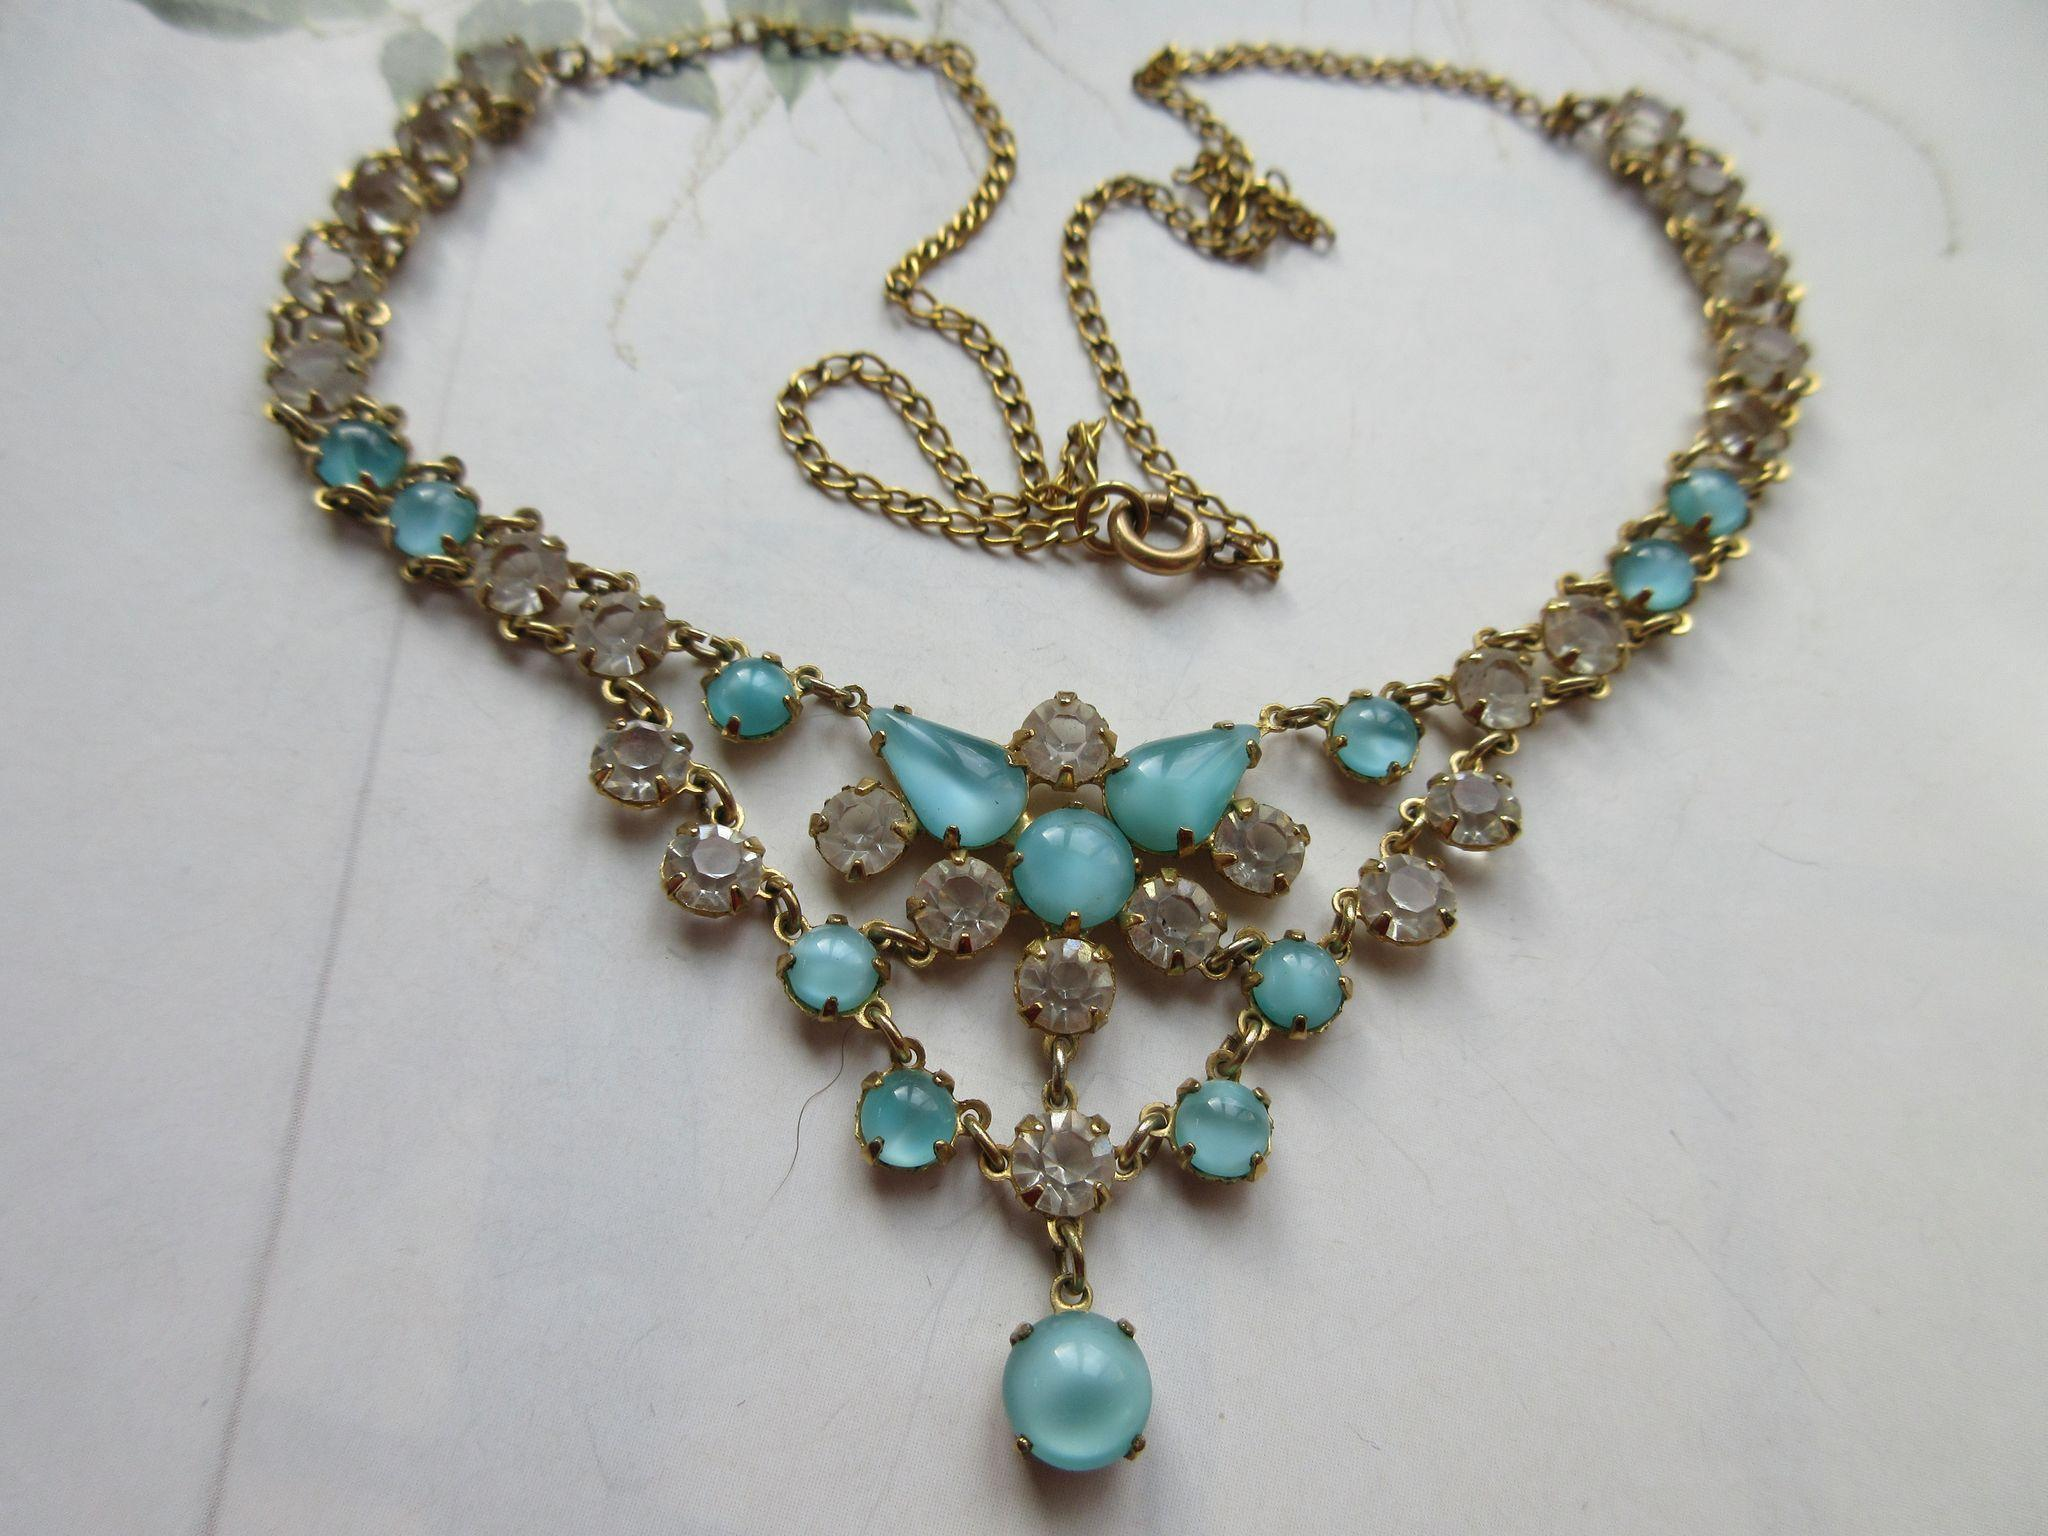 Vintage Open Back Crystal Necklace in Gold Fill